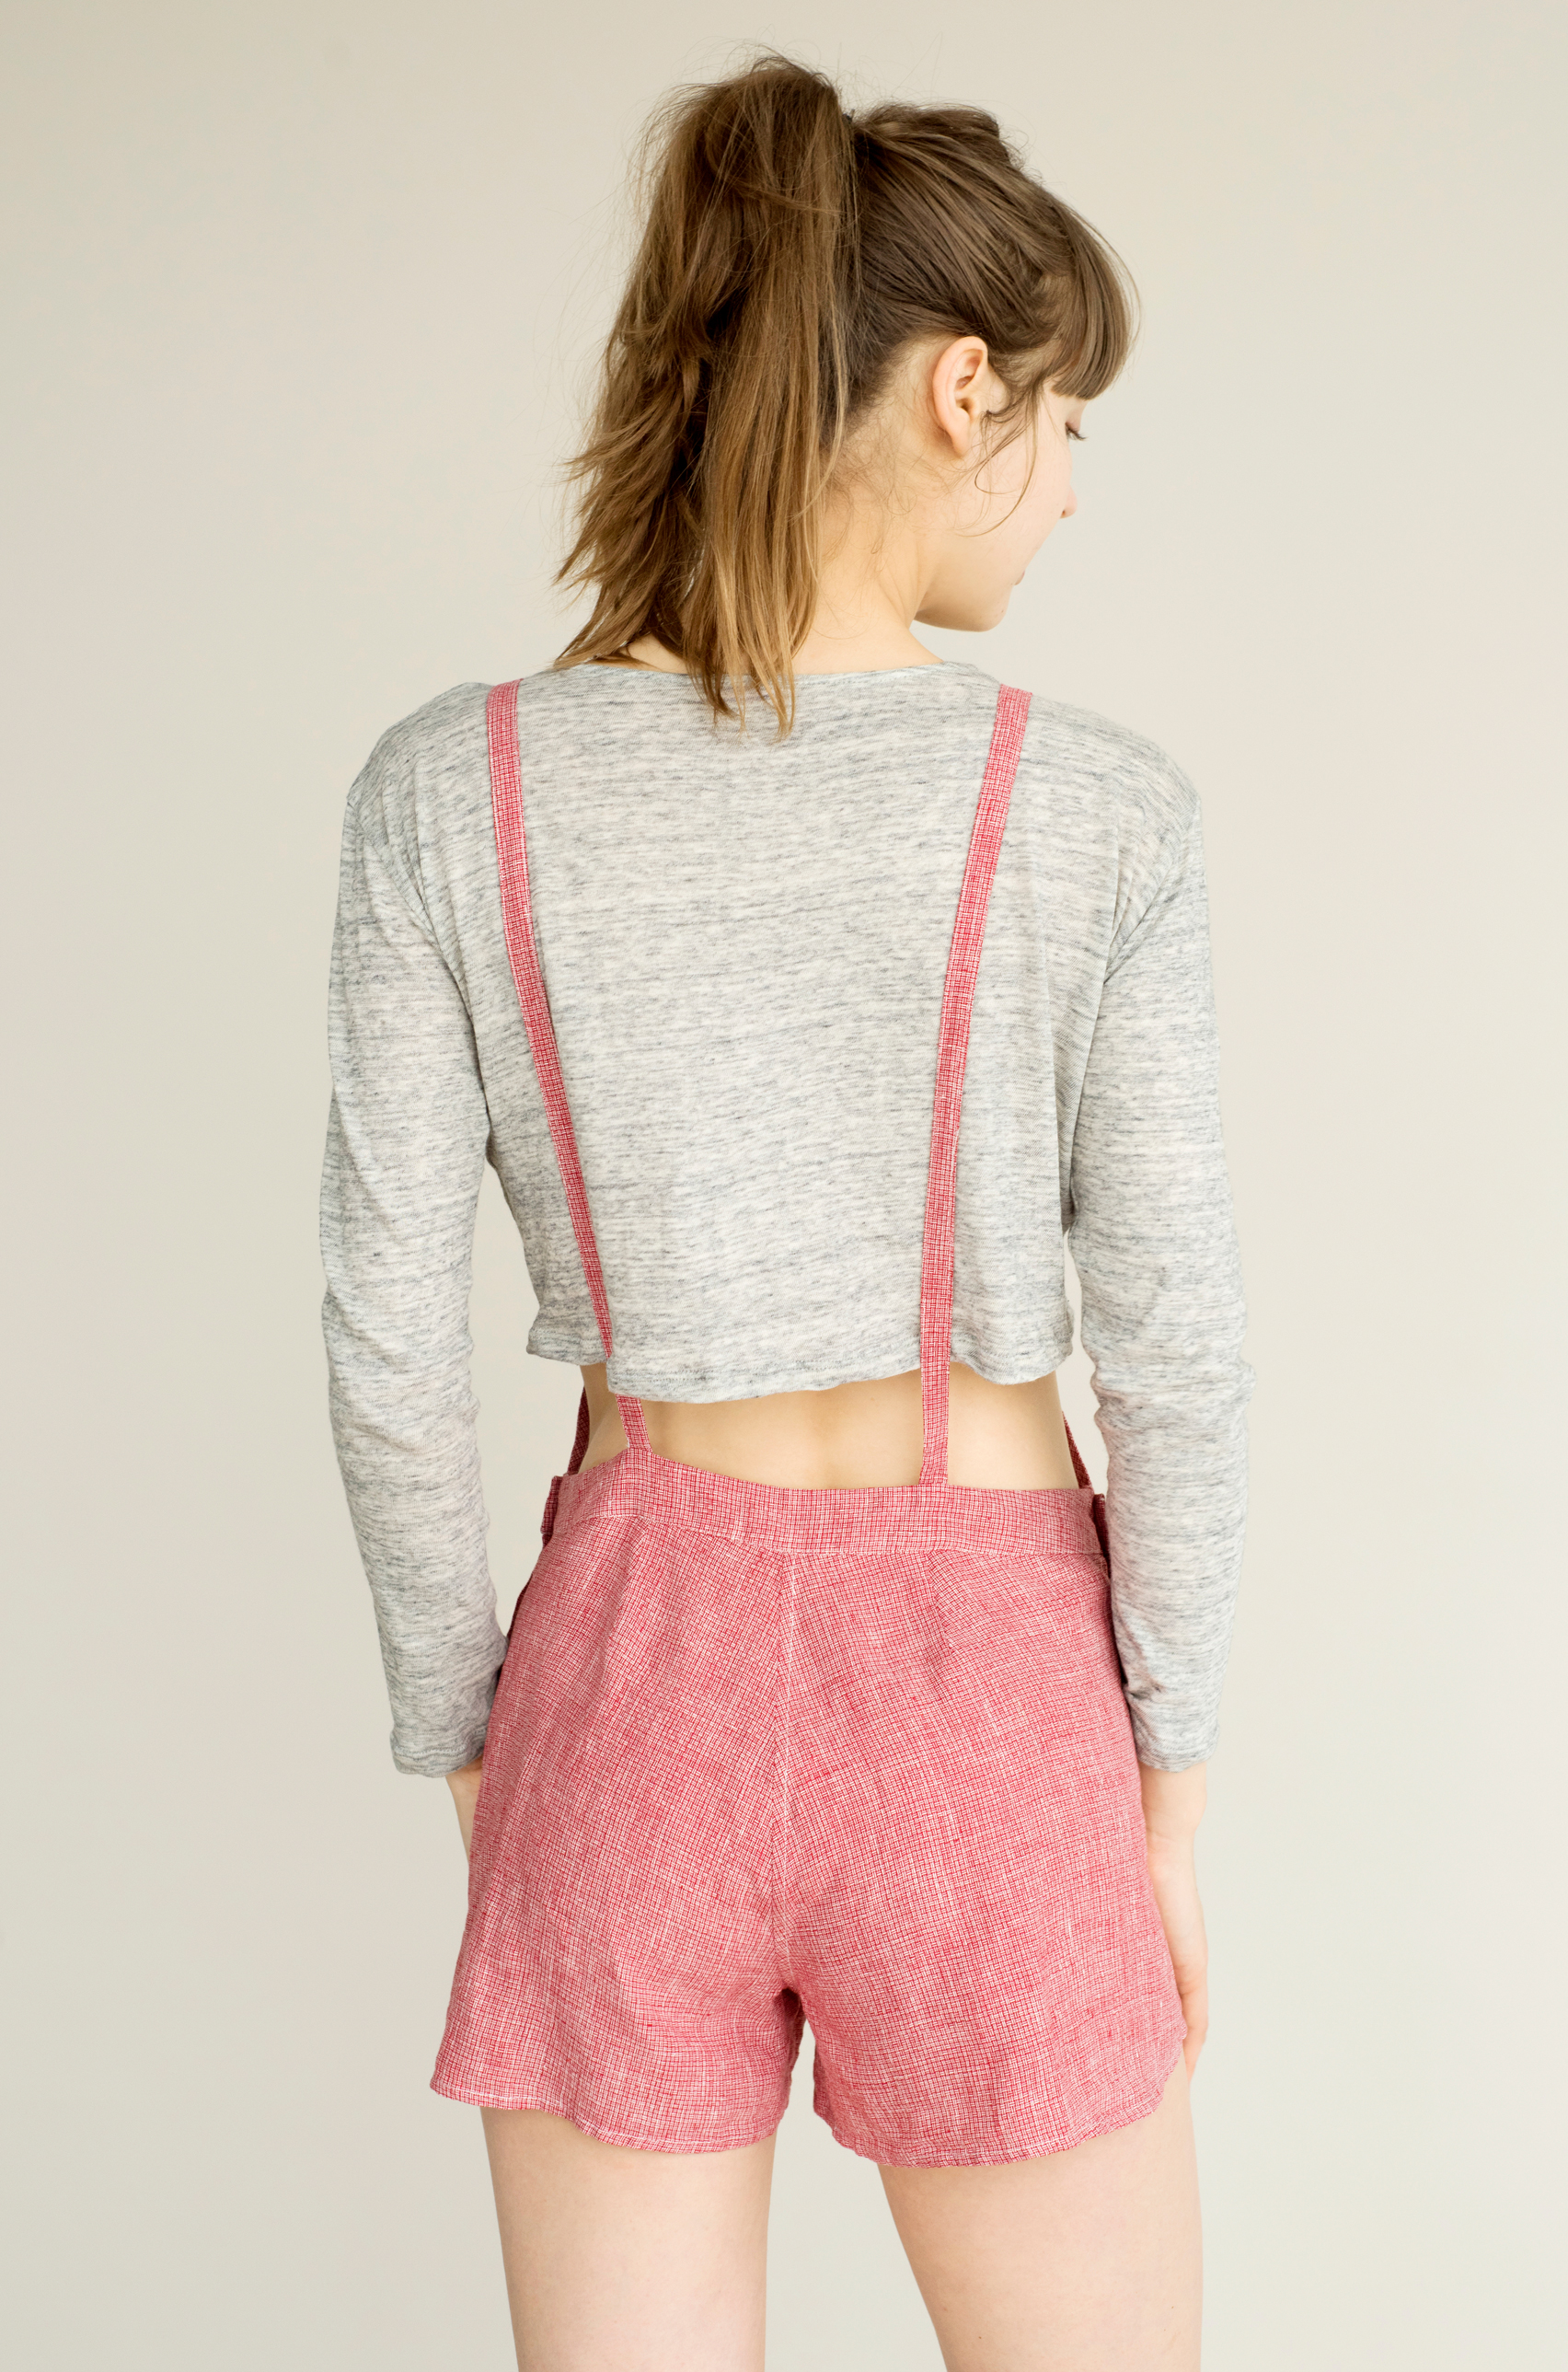 Beat the Heat in These Super Cute Overall Shorts - Racked LA